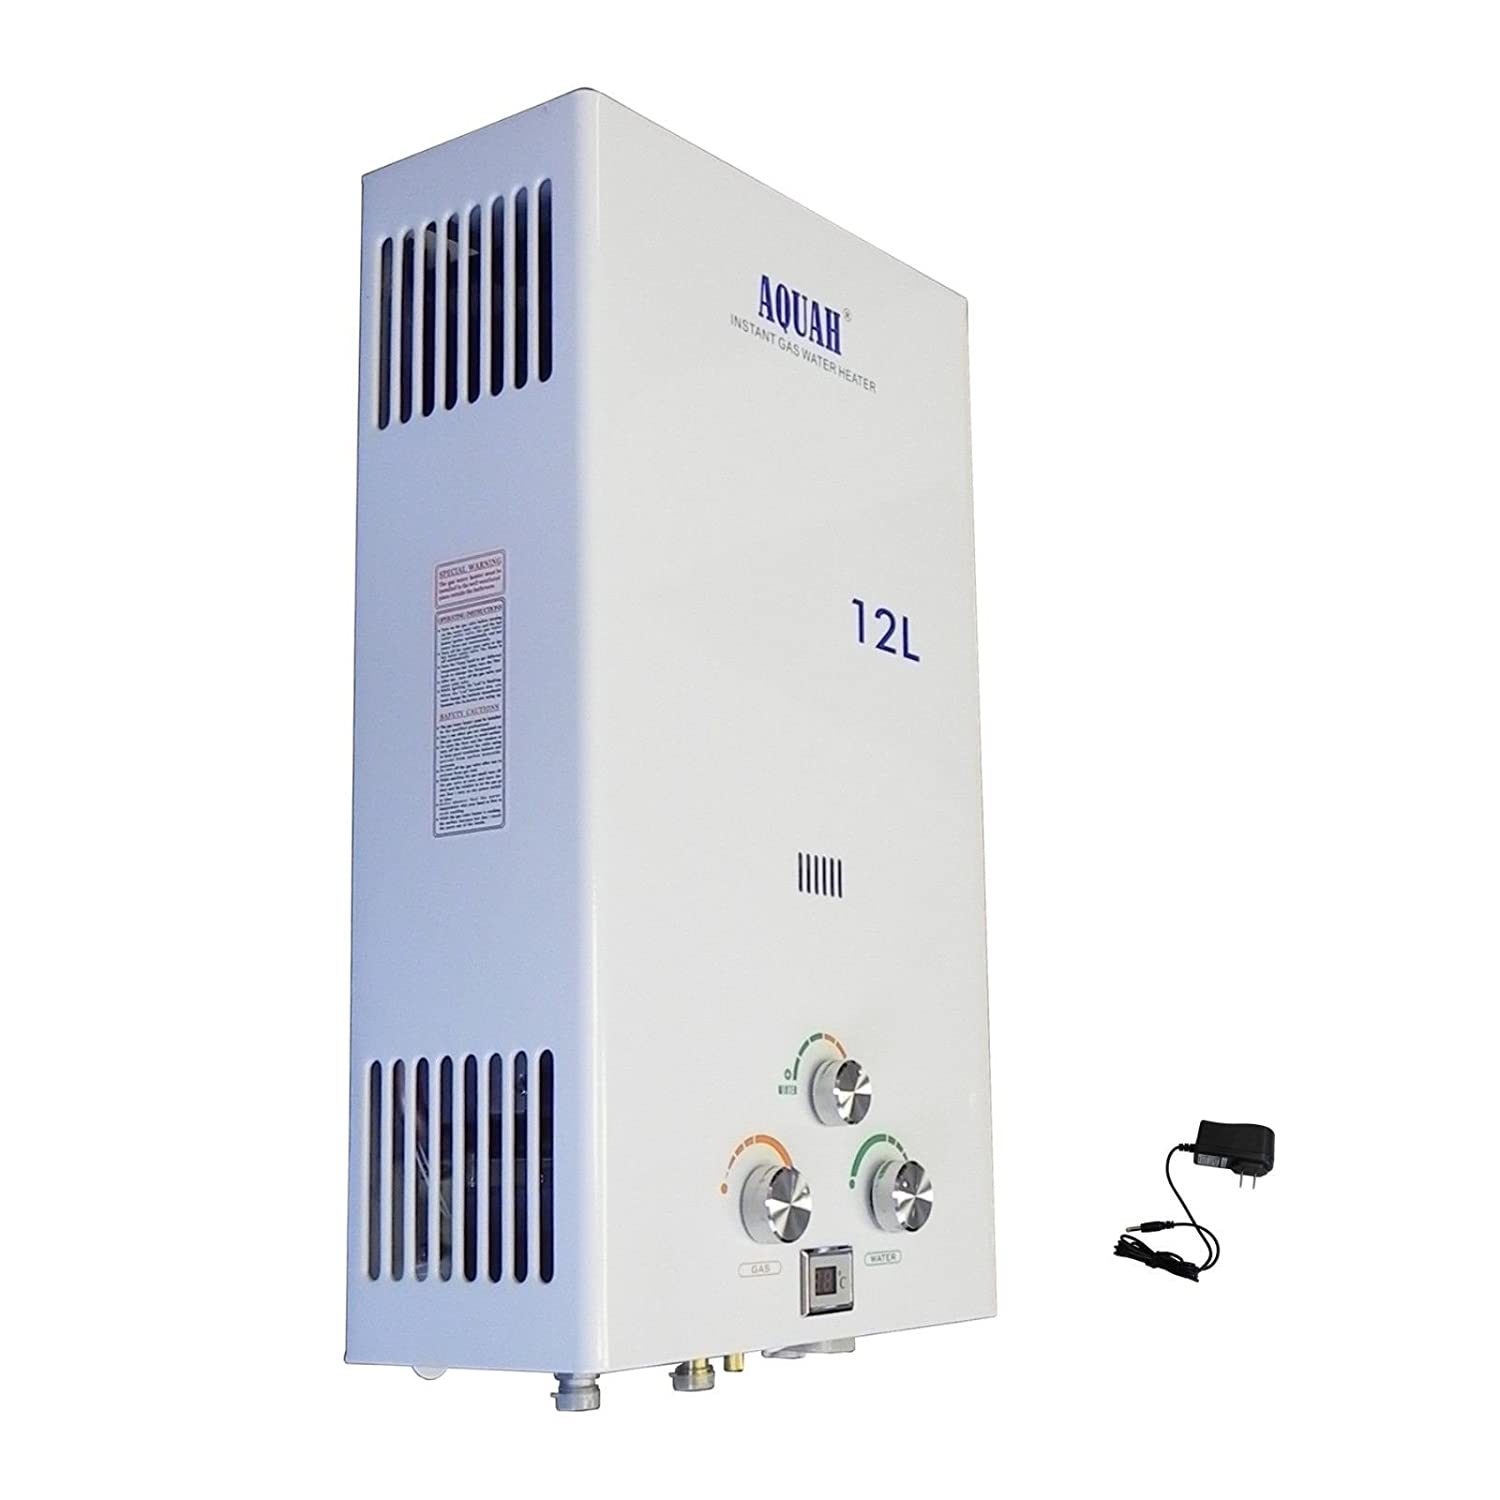 Whole House Water Heater Aquah Indoor Natual Gas Tankless Water Heater 12l 32 Gpm